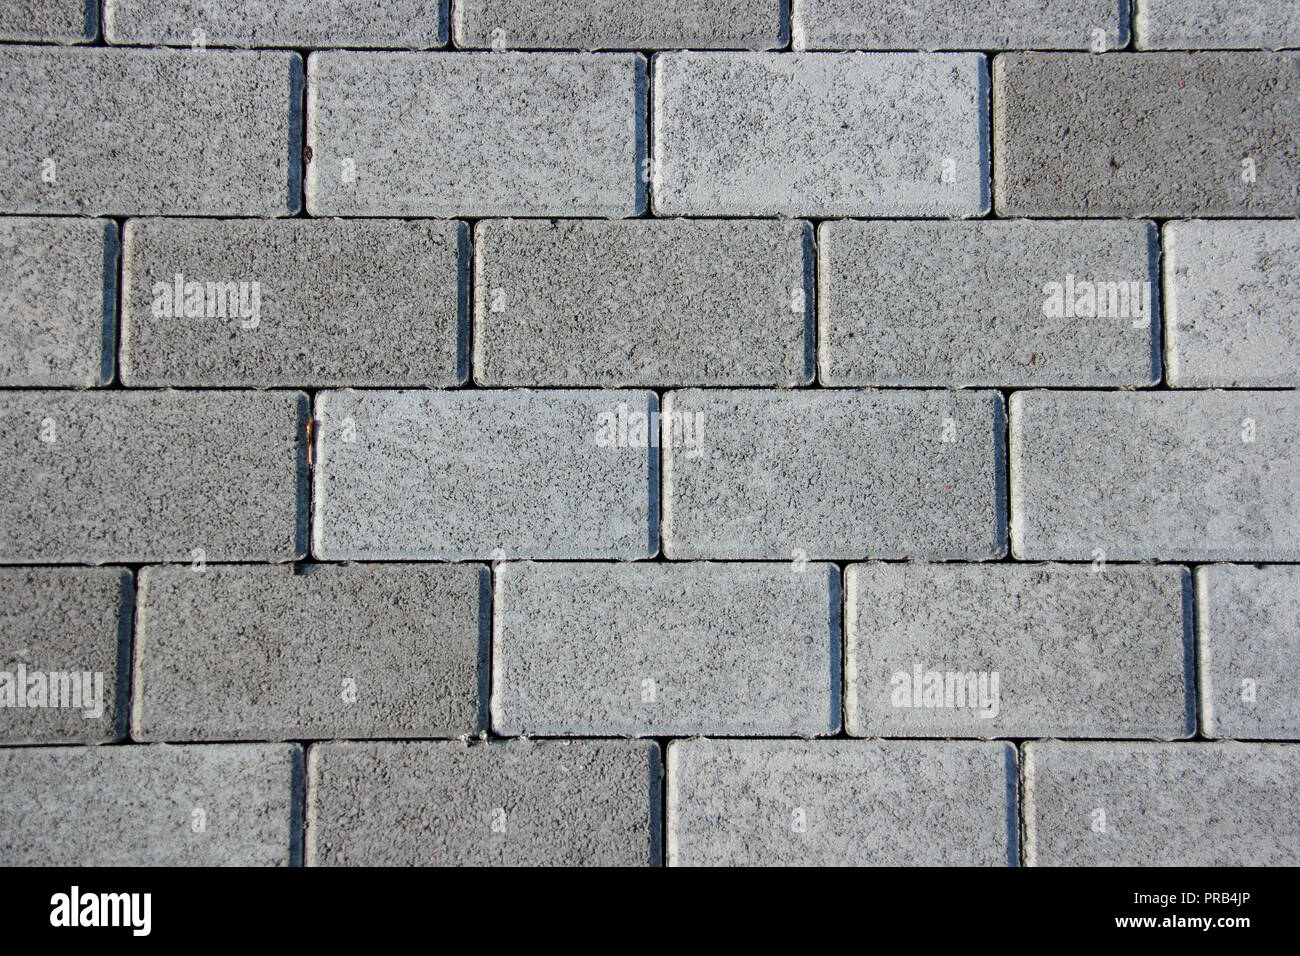 Stone Pavement In Perspective Stone Pavement Texture Stock Photo Alamy